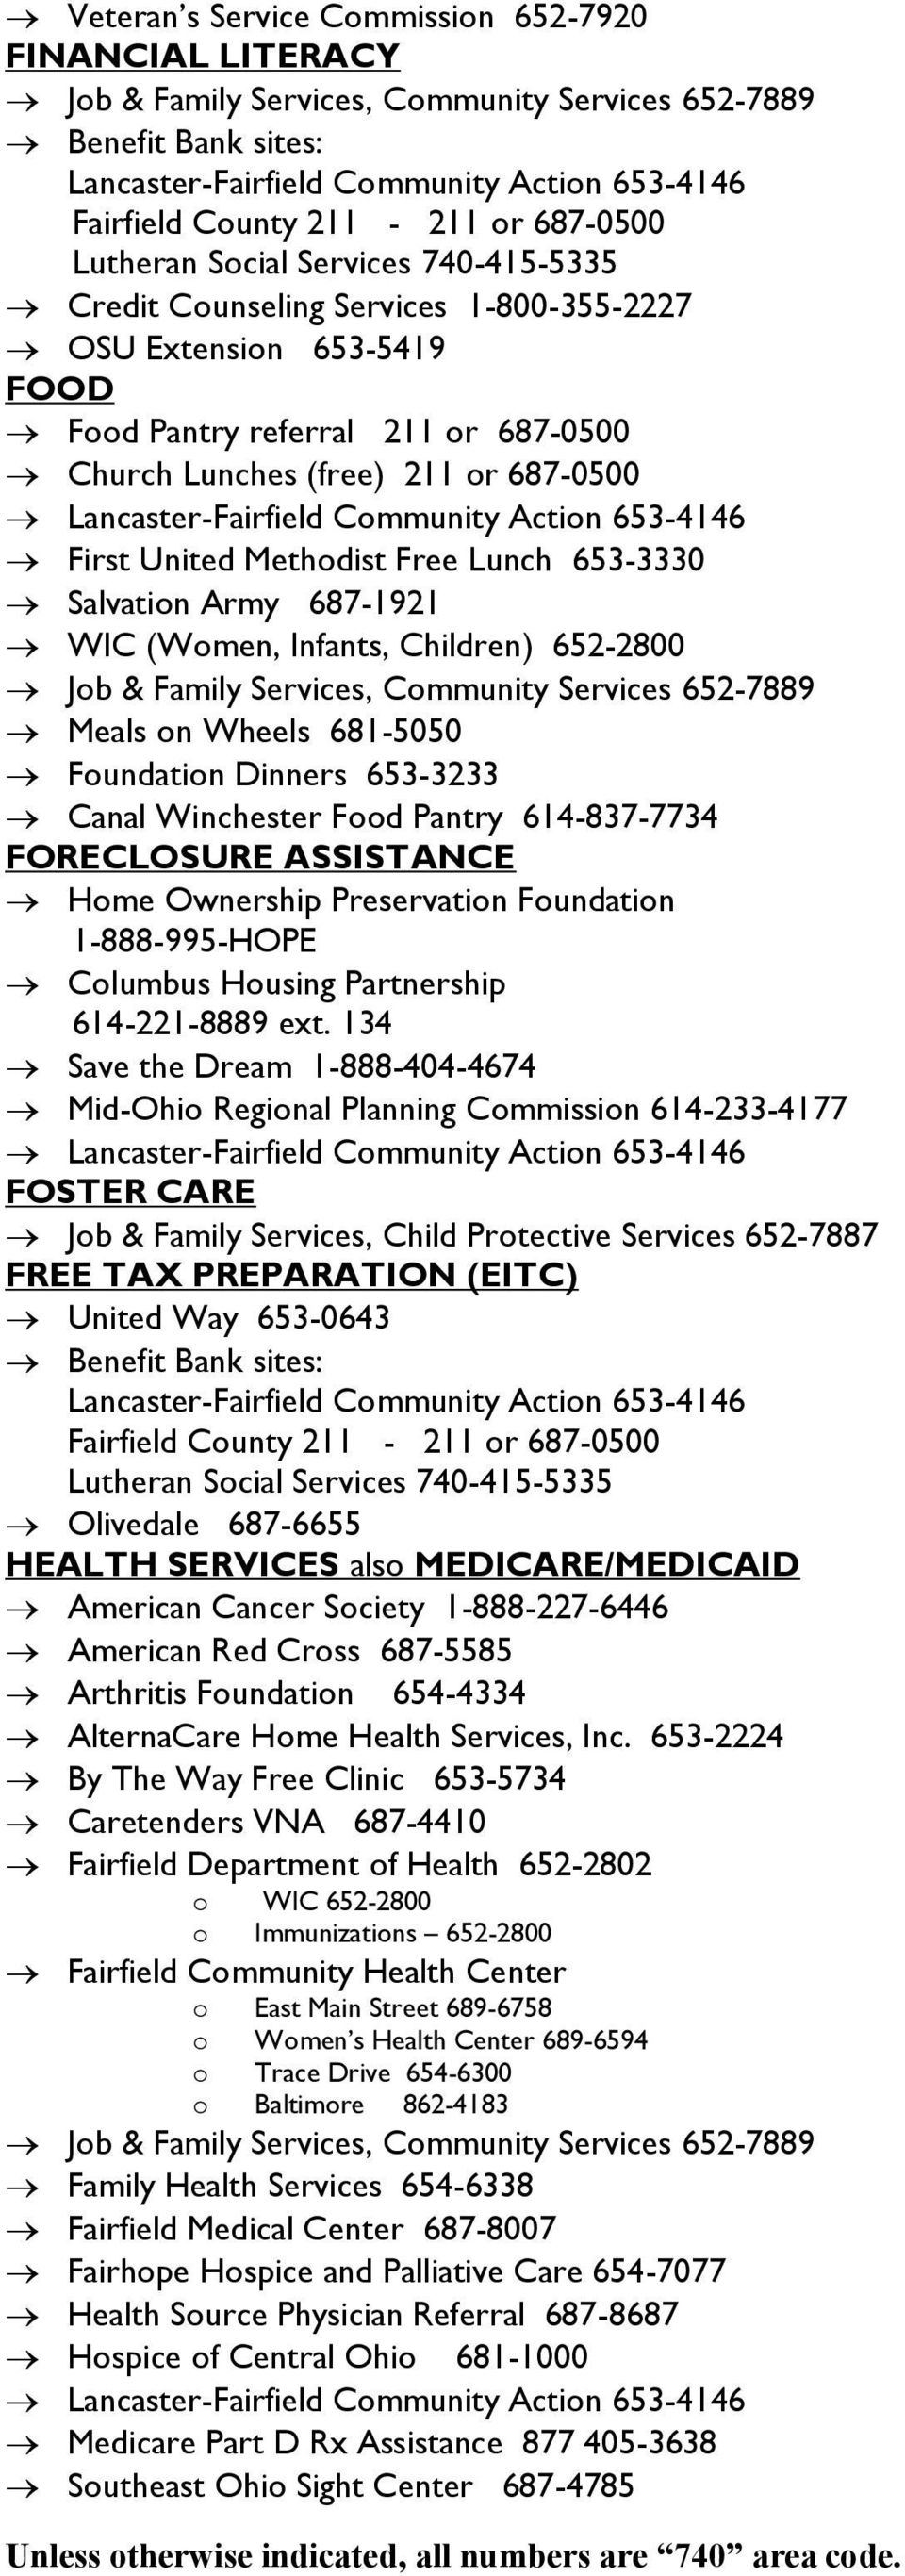 Infants, Children) 652-2800 Meals on Wheels 681-5050 Foundation Dinners 653-3233 Canal Winchester Food Pantry 614-837-7734 FORECLOSURE ASSISTANCE Home Ownership Preservation Foundation 1-888-995-HOPE